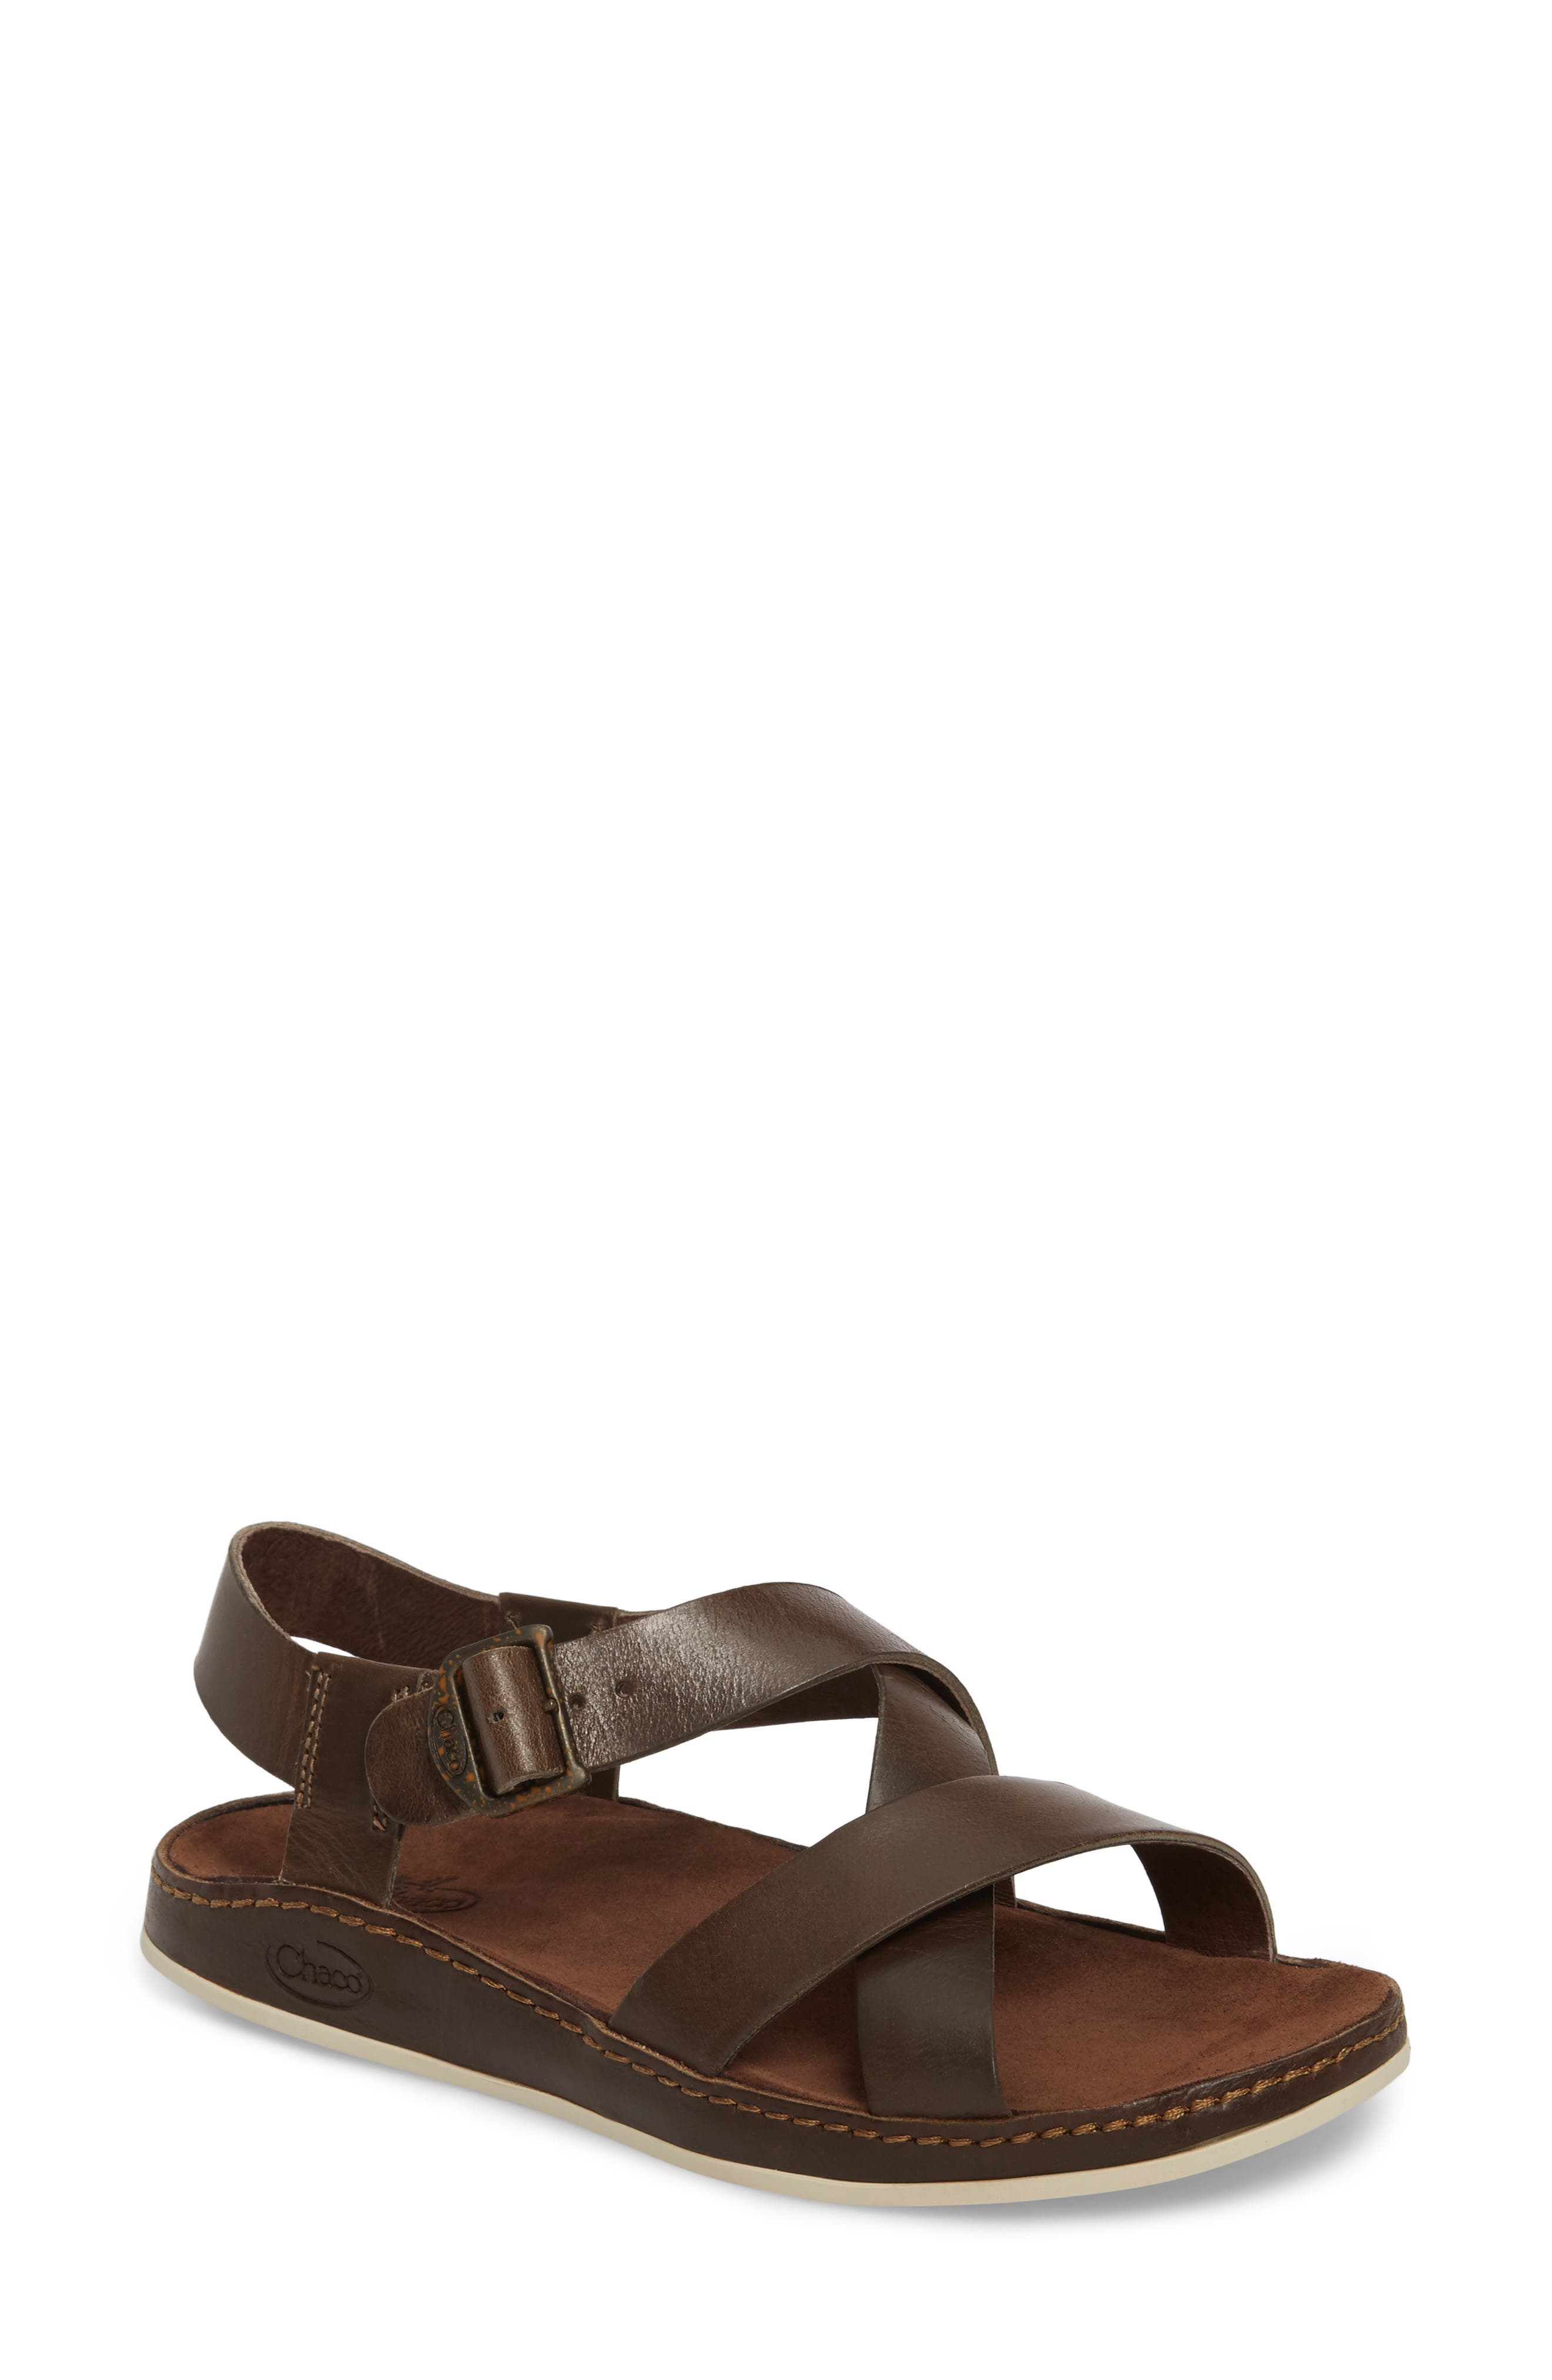 Strappy Sandal,                         Main,                         color, OTTER LEATHER